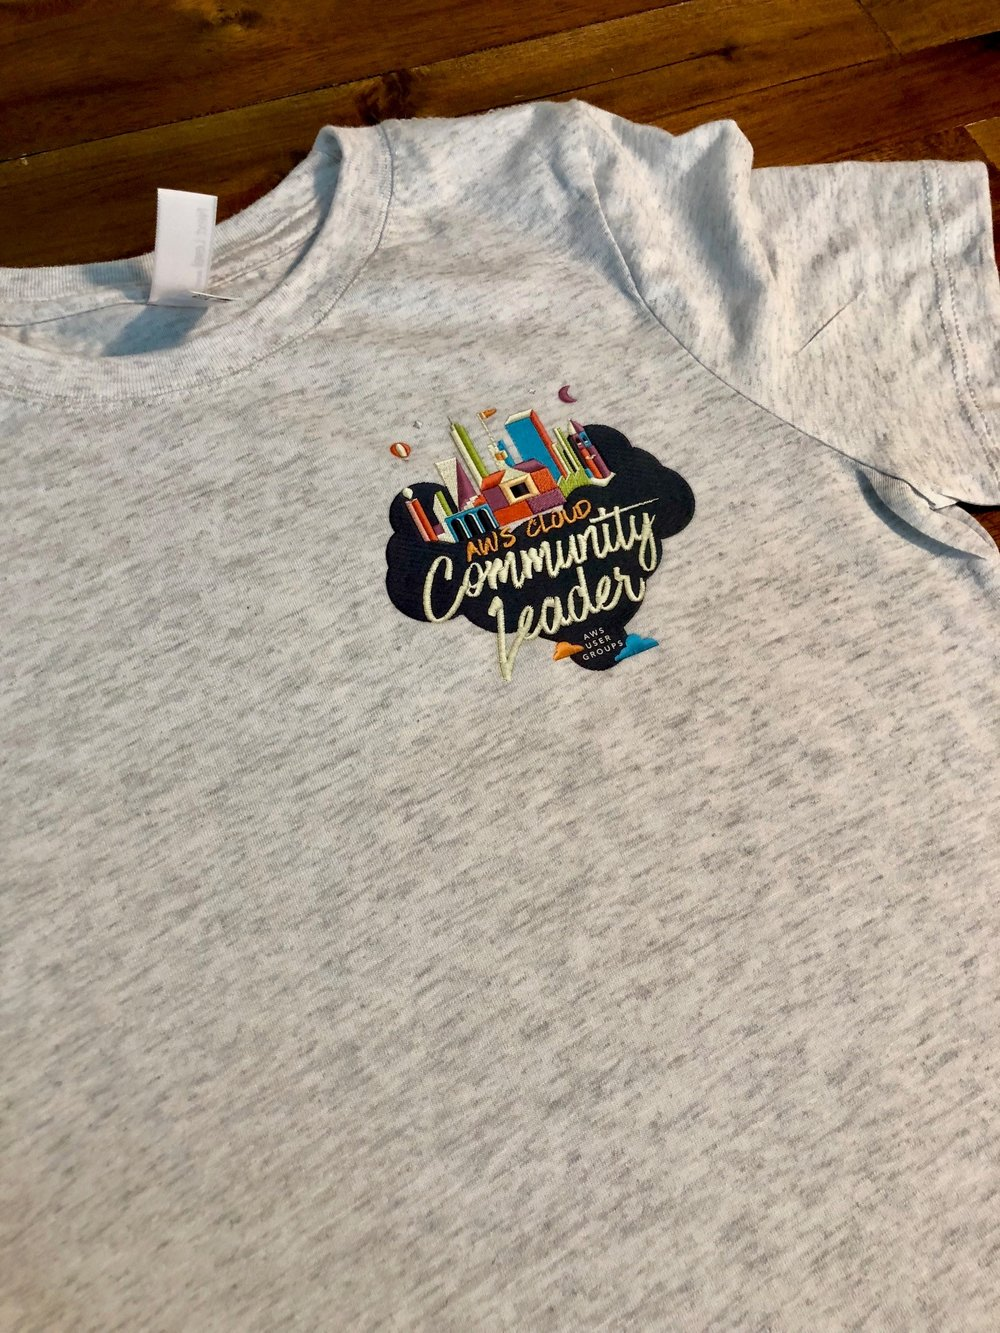 logounltd_laser_etching_embroidery_screen_printing_apparel_uniform_custom_tshirts_dye_sublimation_kirkland_bellevue_seattle_redmond_branded_merchandise_promotional_products_logo_unltd_amazon_aws_tshirt_patches (3).jpg